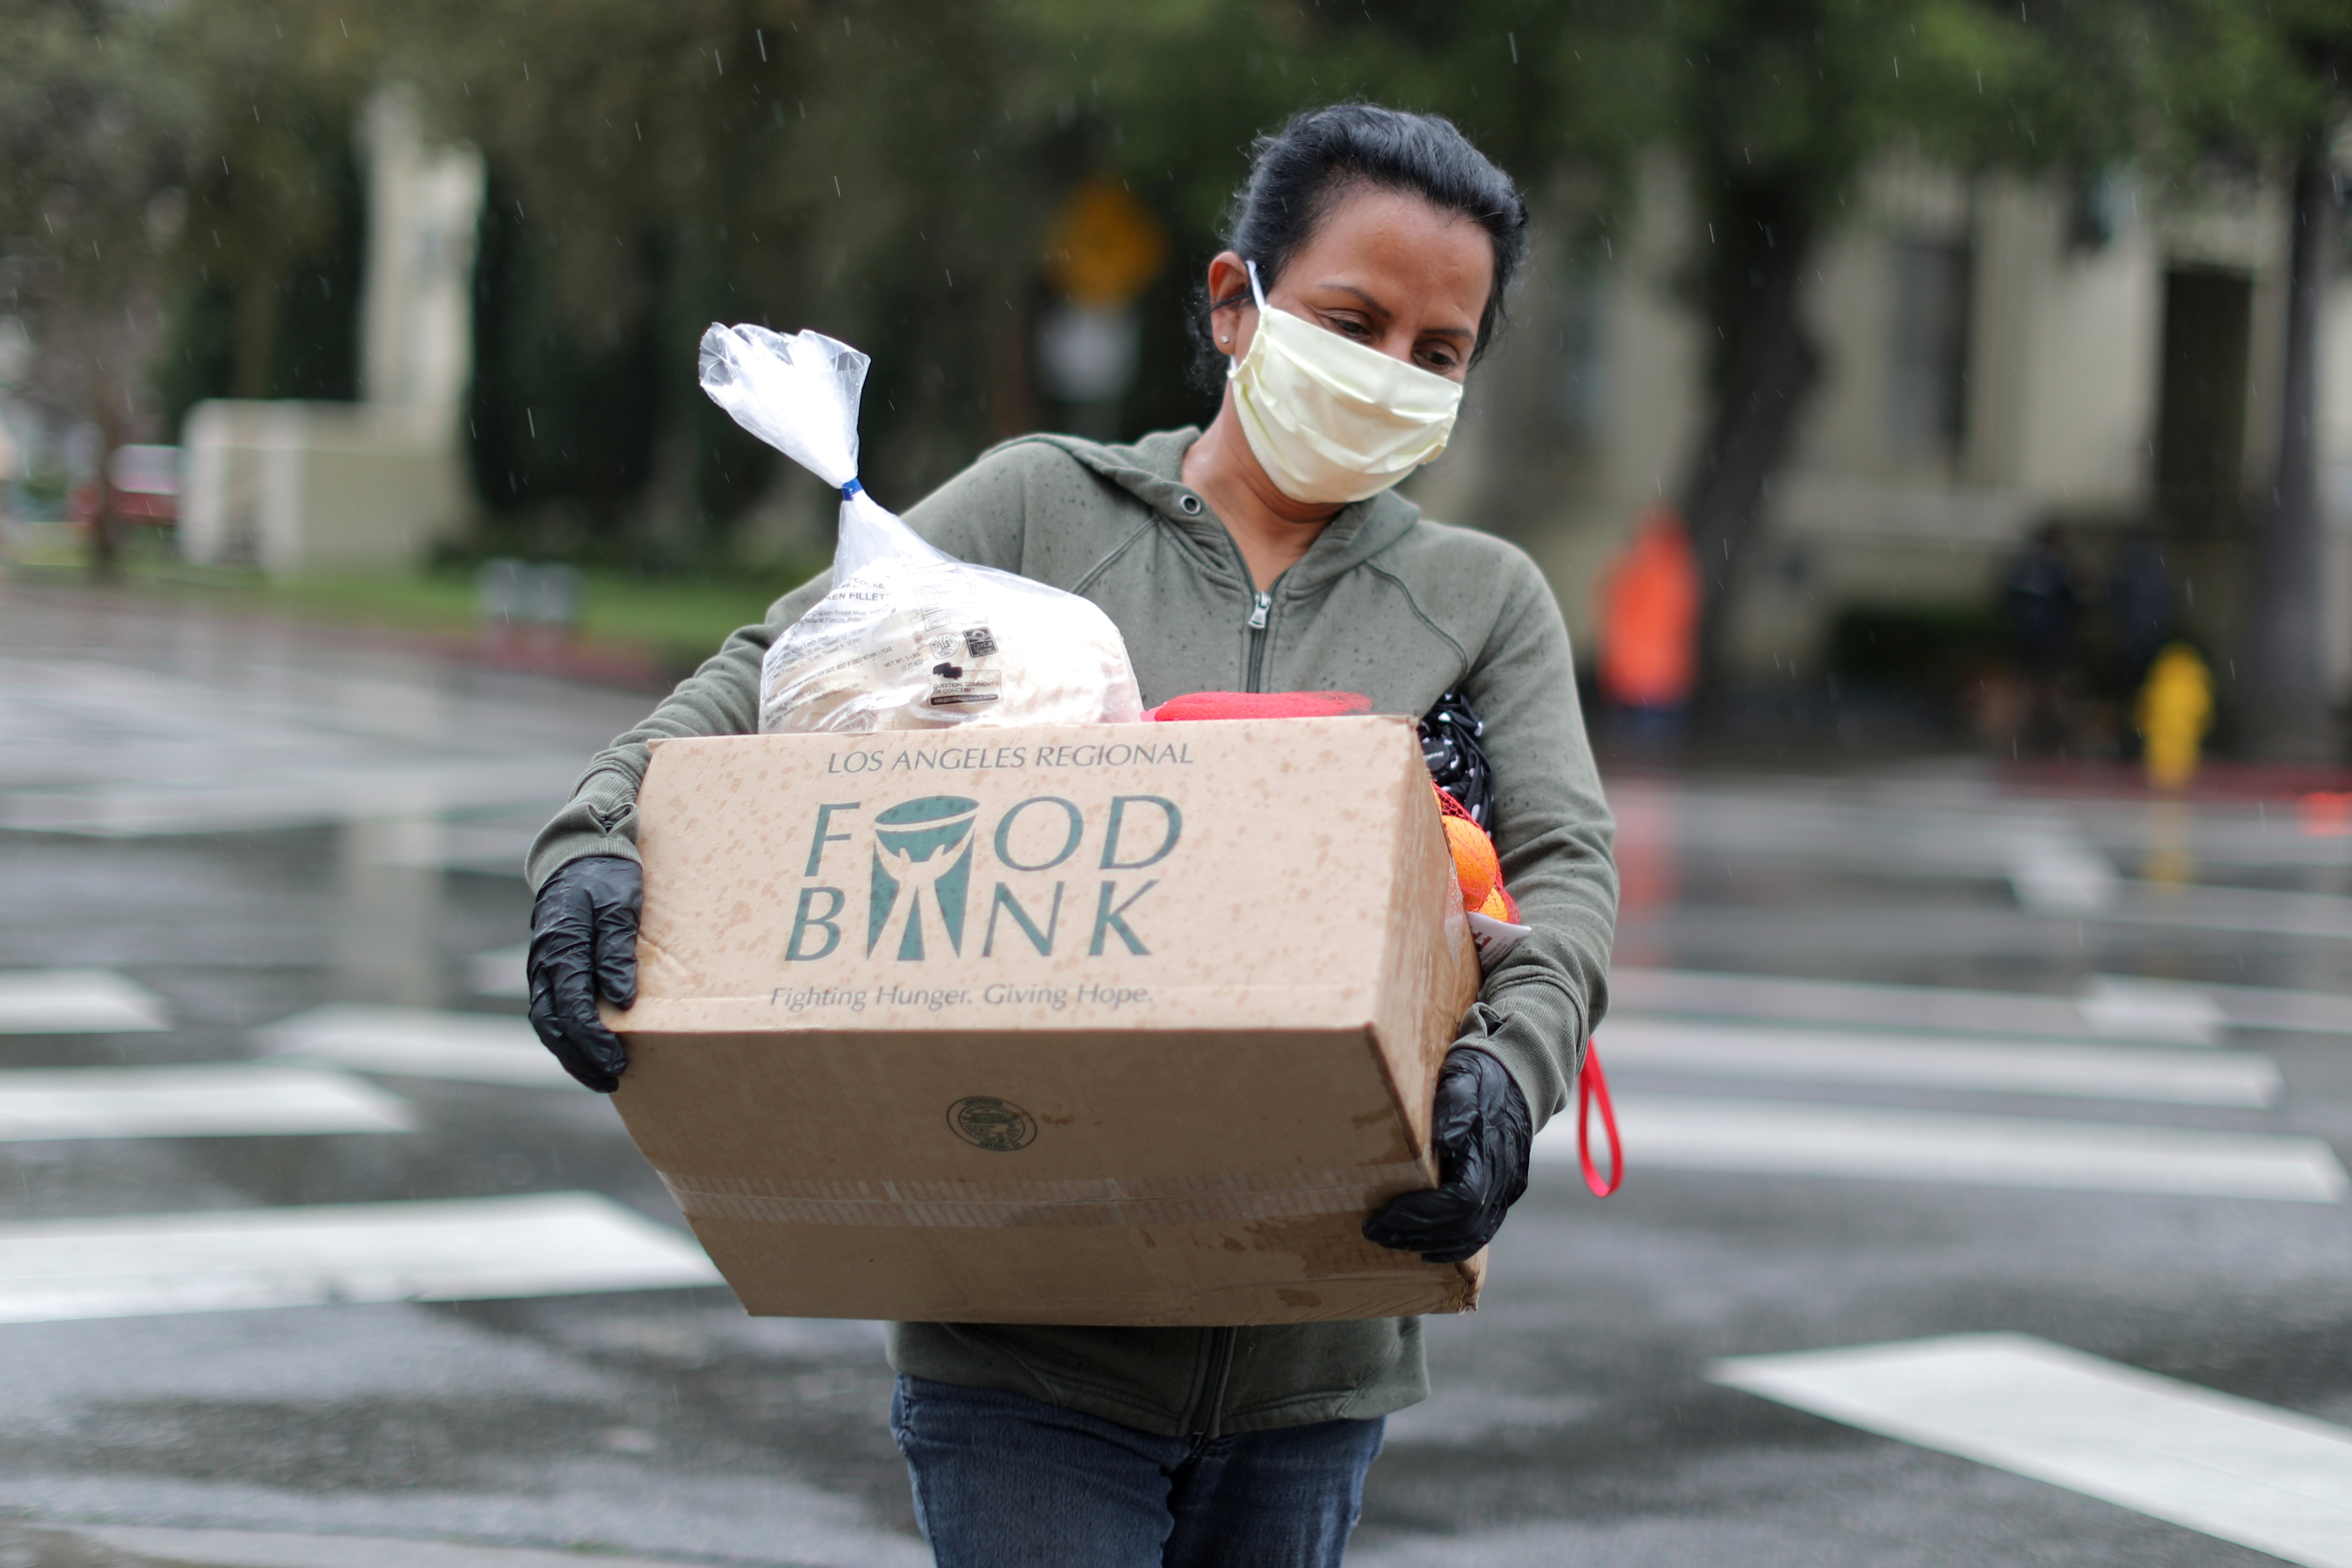 FILE PHOTO: A woman carries away fresh food at a Los Angeles Regional Food Bank giveaway of 2,000 boxes of groceries, as the spread of the coronavirus disease (COVID-19) continues, in Los Angeles, California, U.S., April 9, 2020.  REUTERS/Lucy Nicholson/File Photo